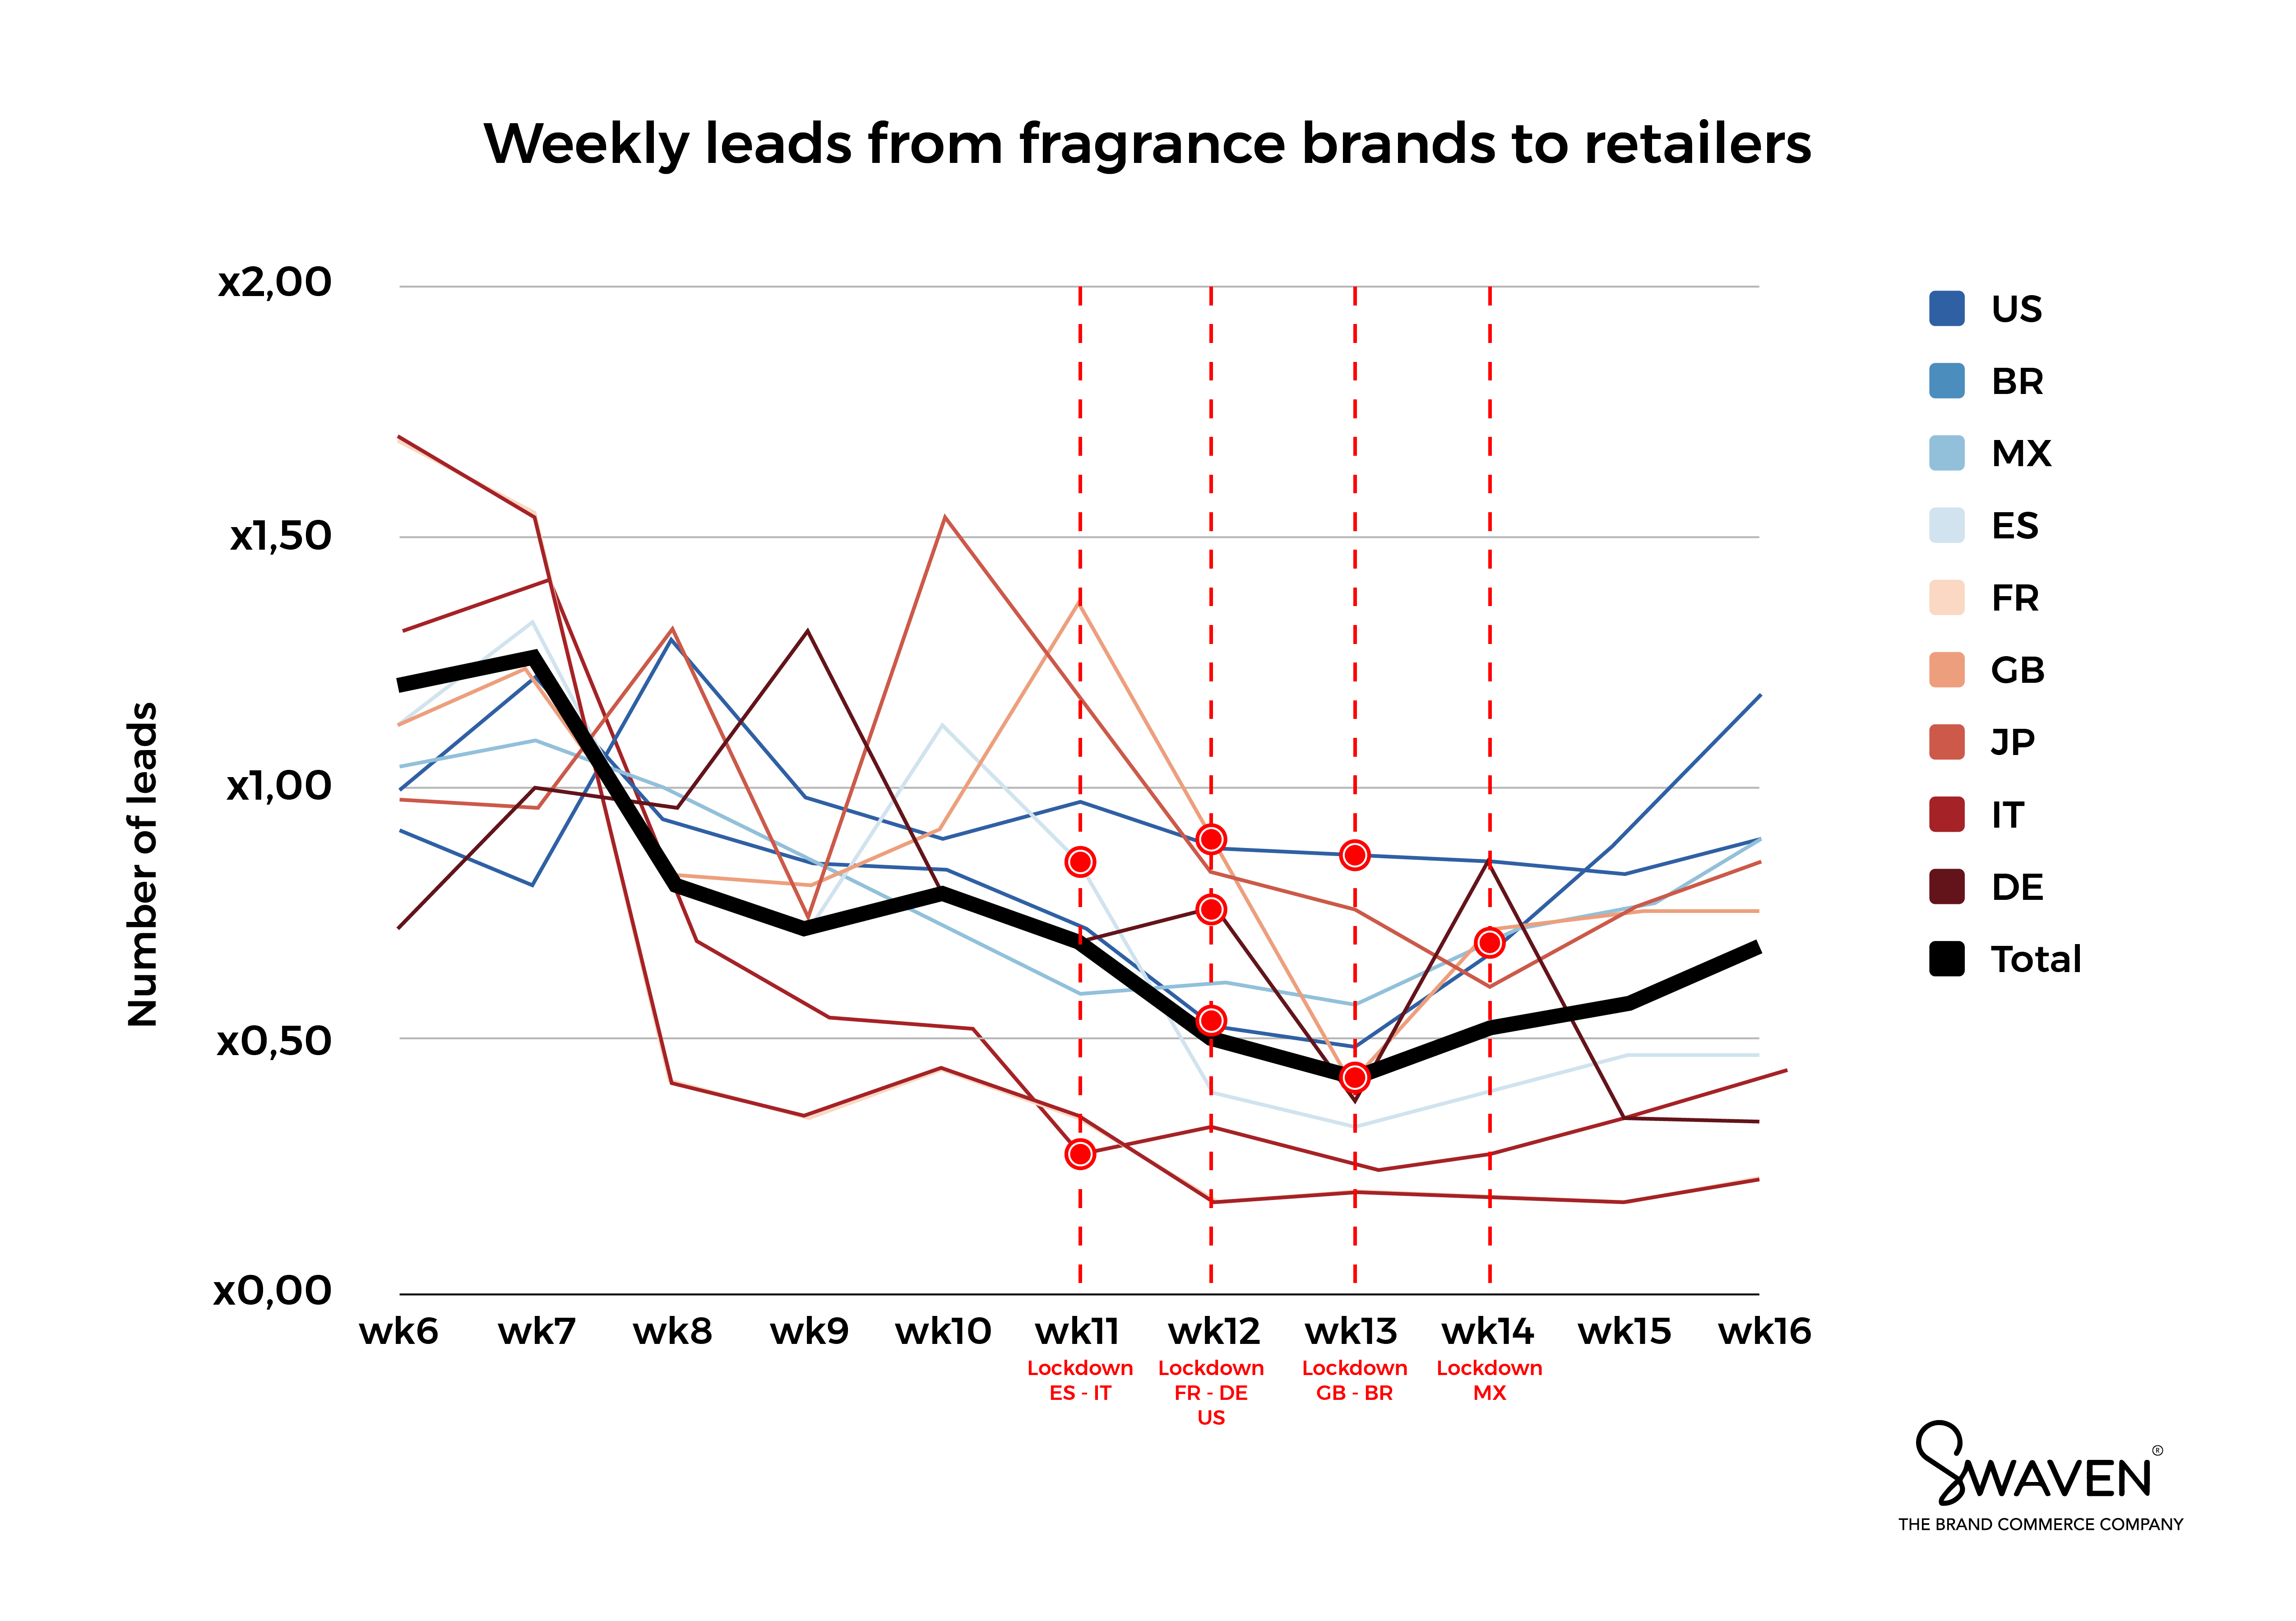 Fragrance demand